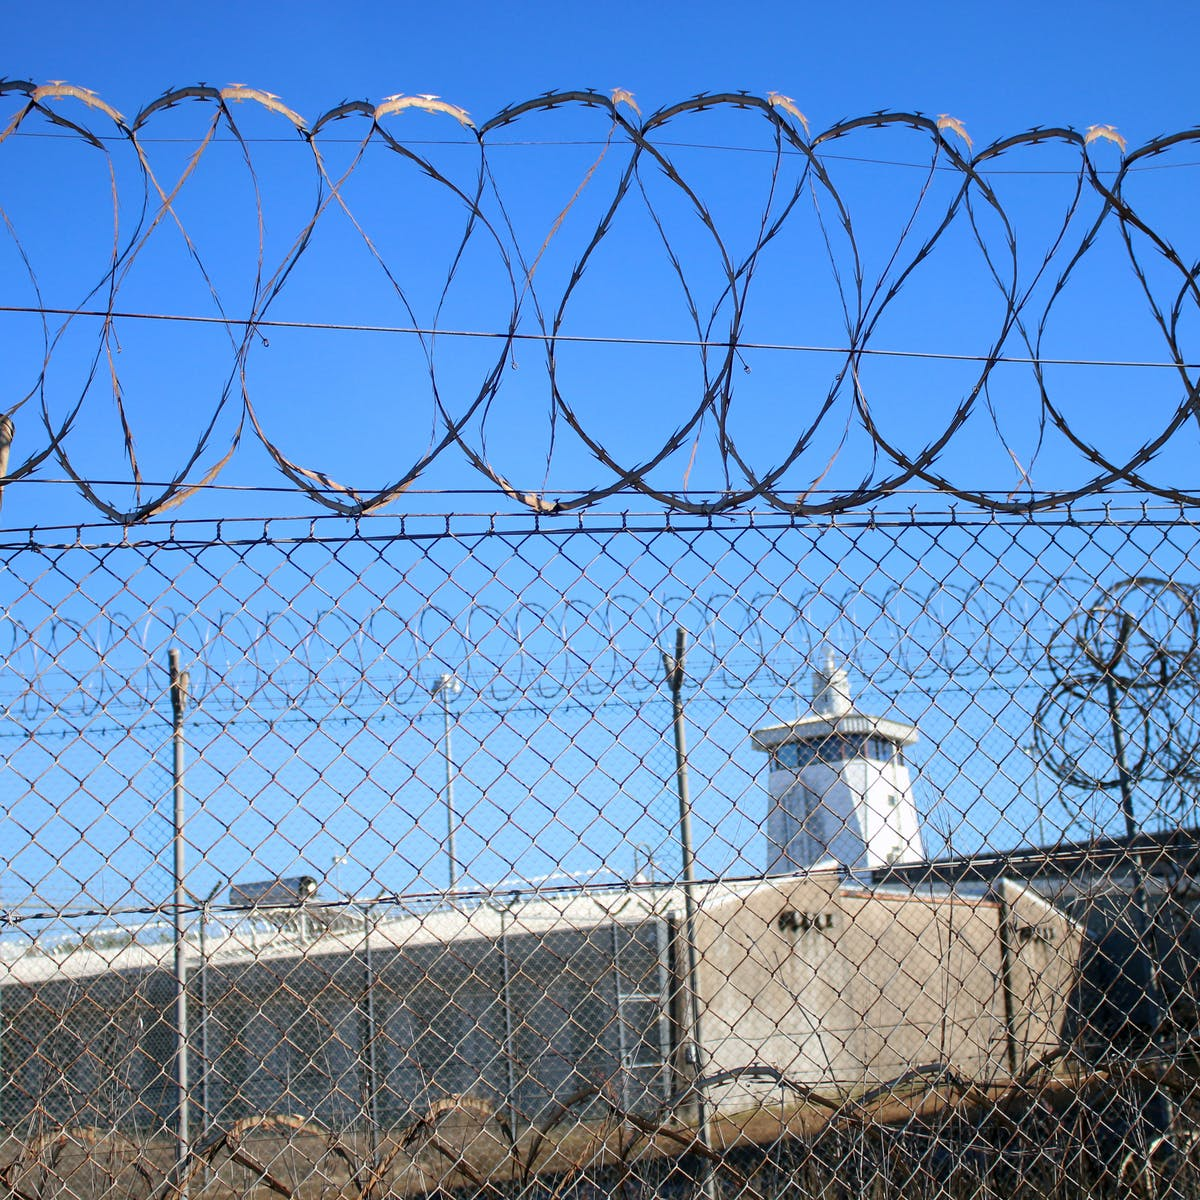 Abuse in youth detention is not restricted to the Northern